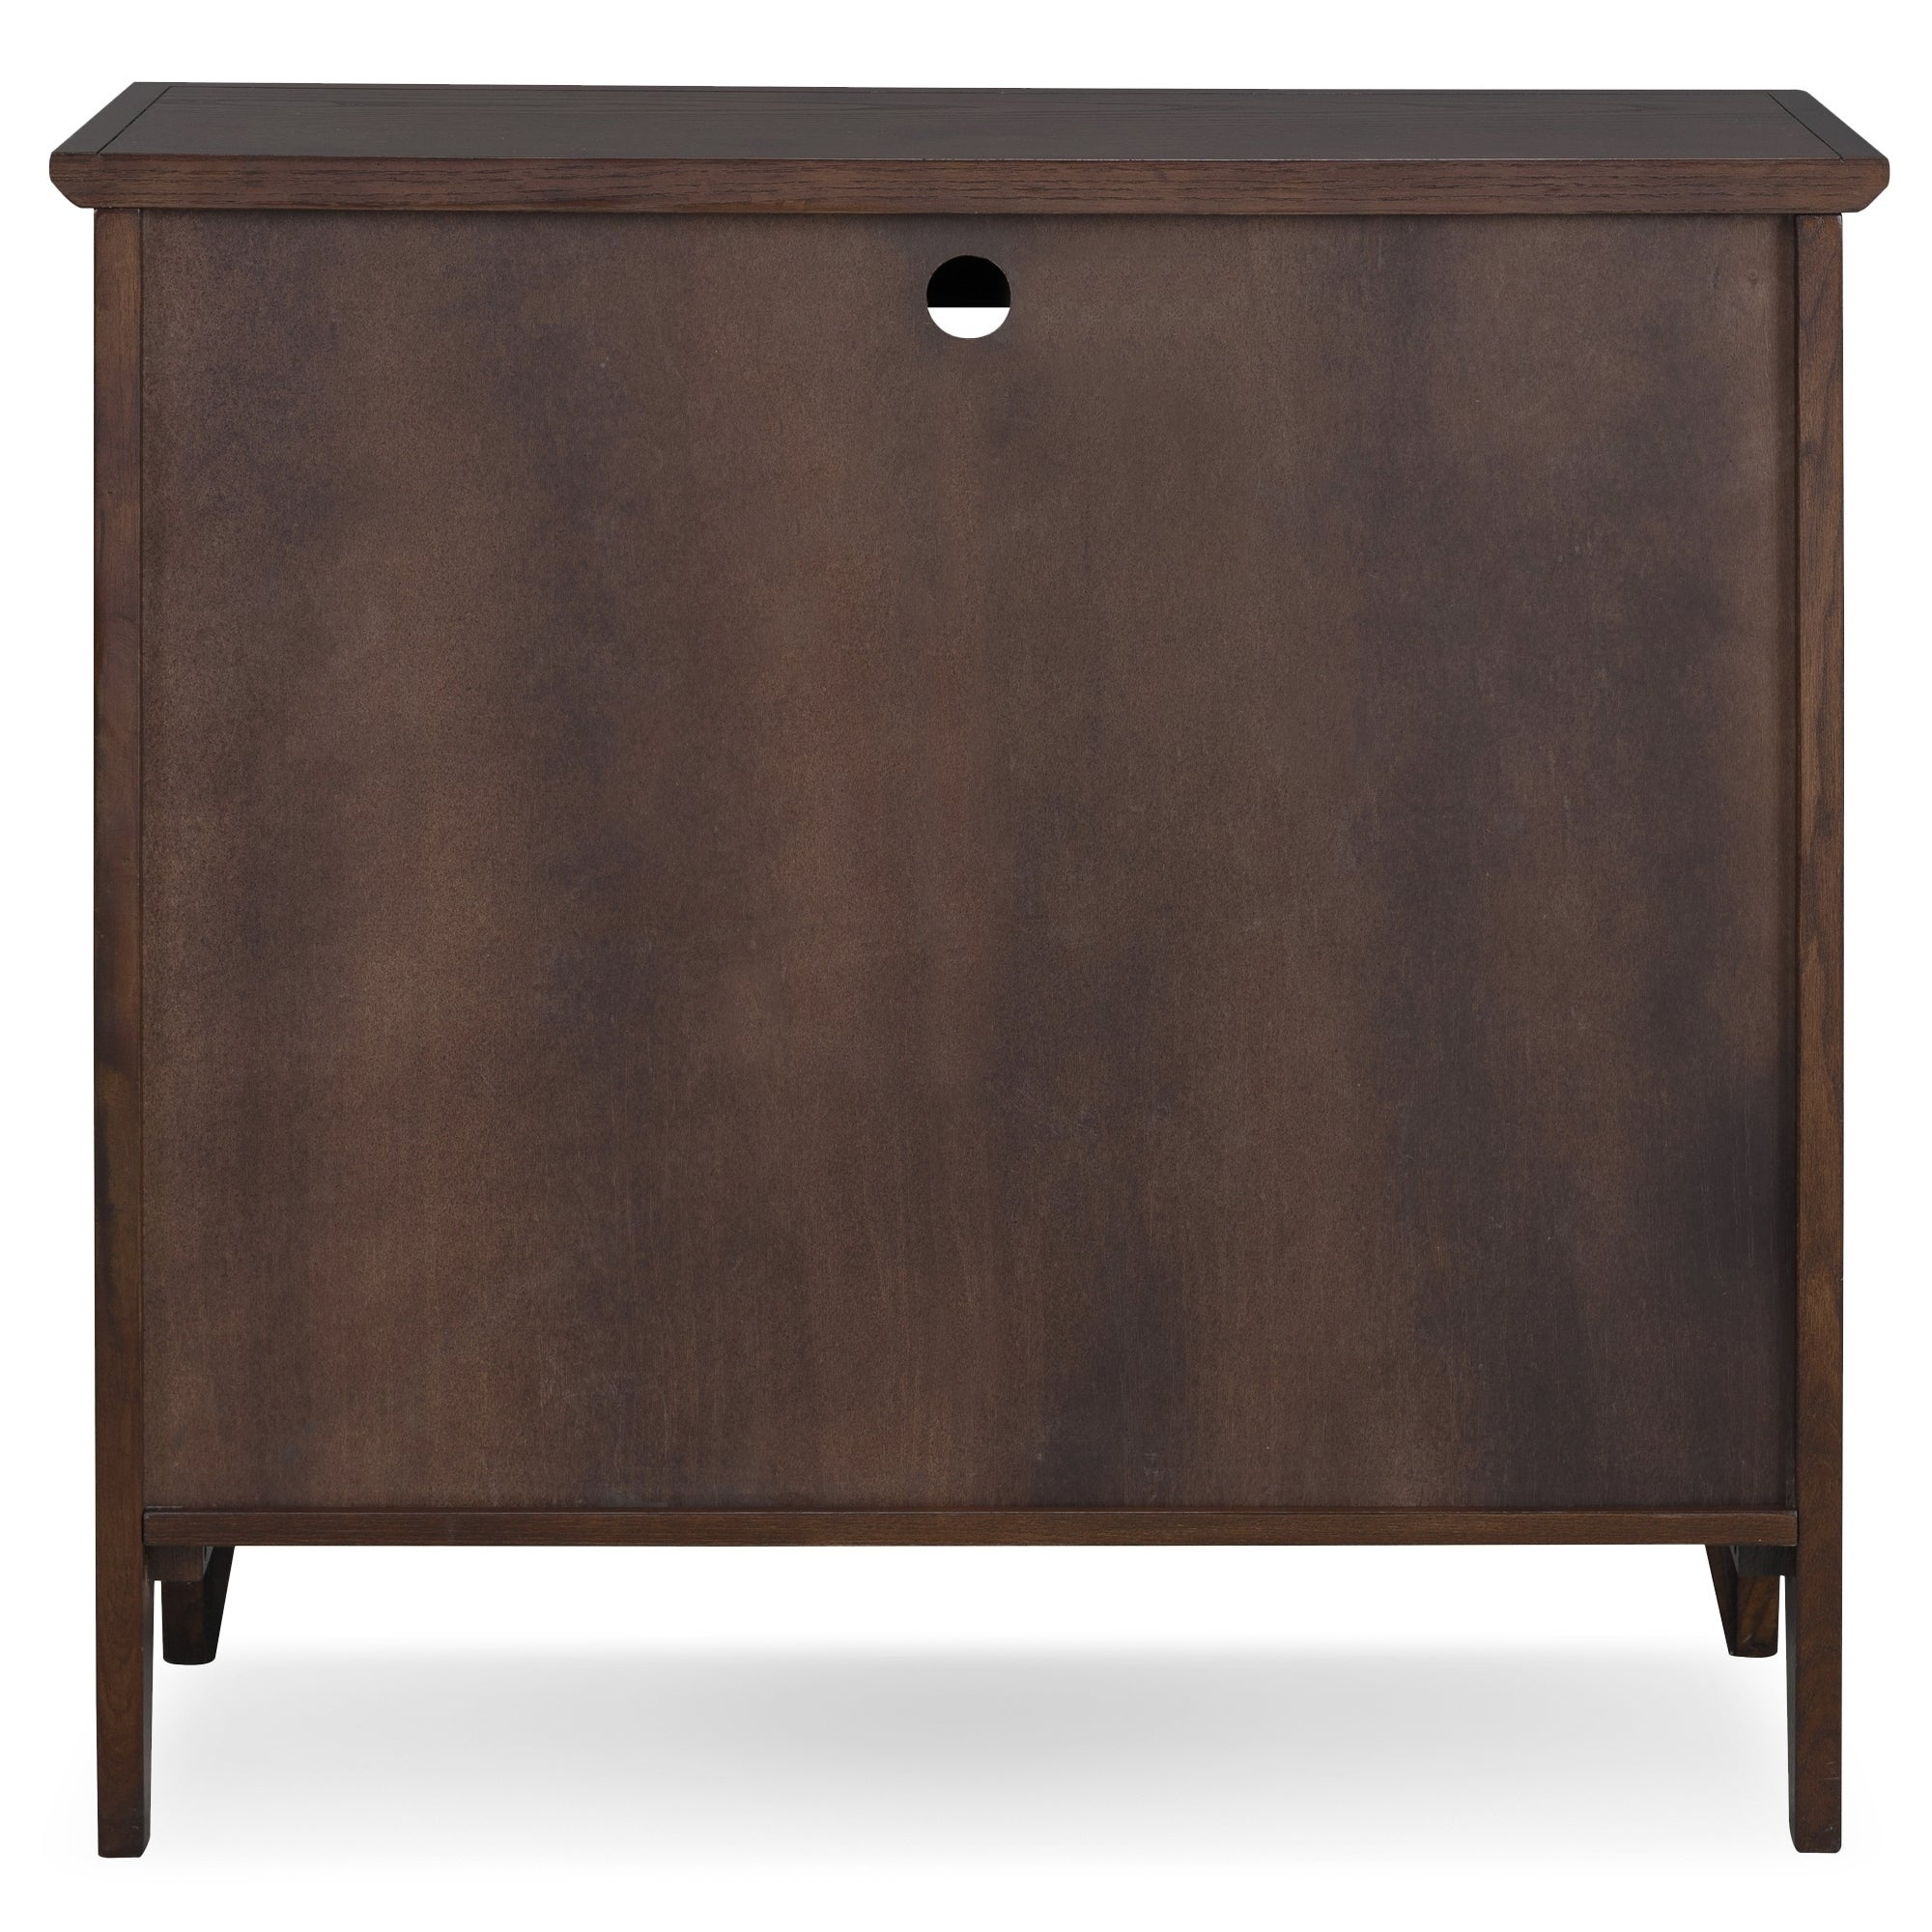 Shop Leick Furniture Favorite Finds Entryway Curio Cabinet With